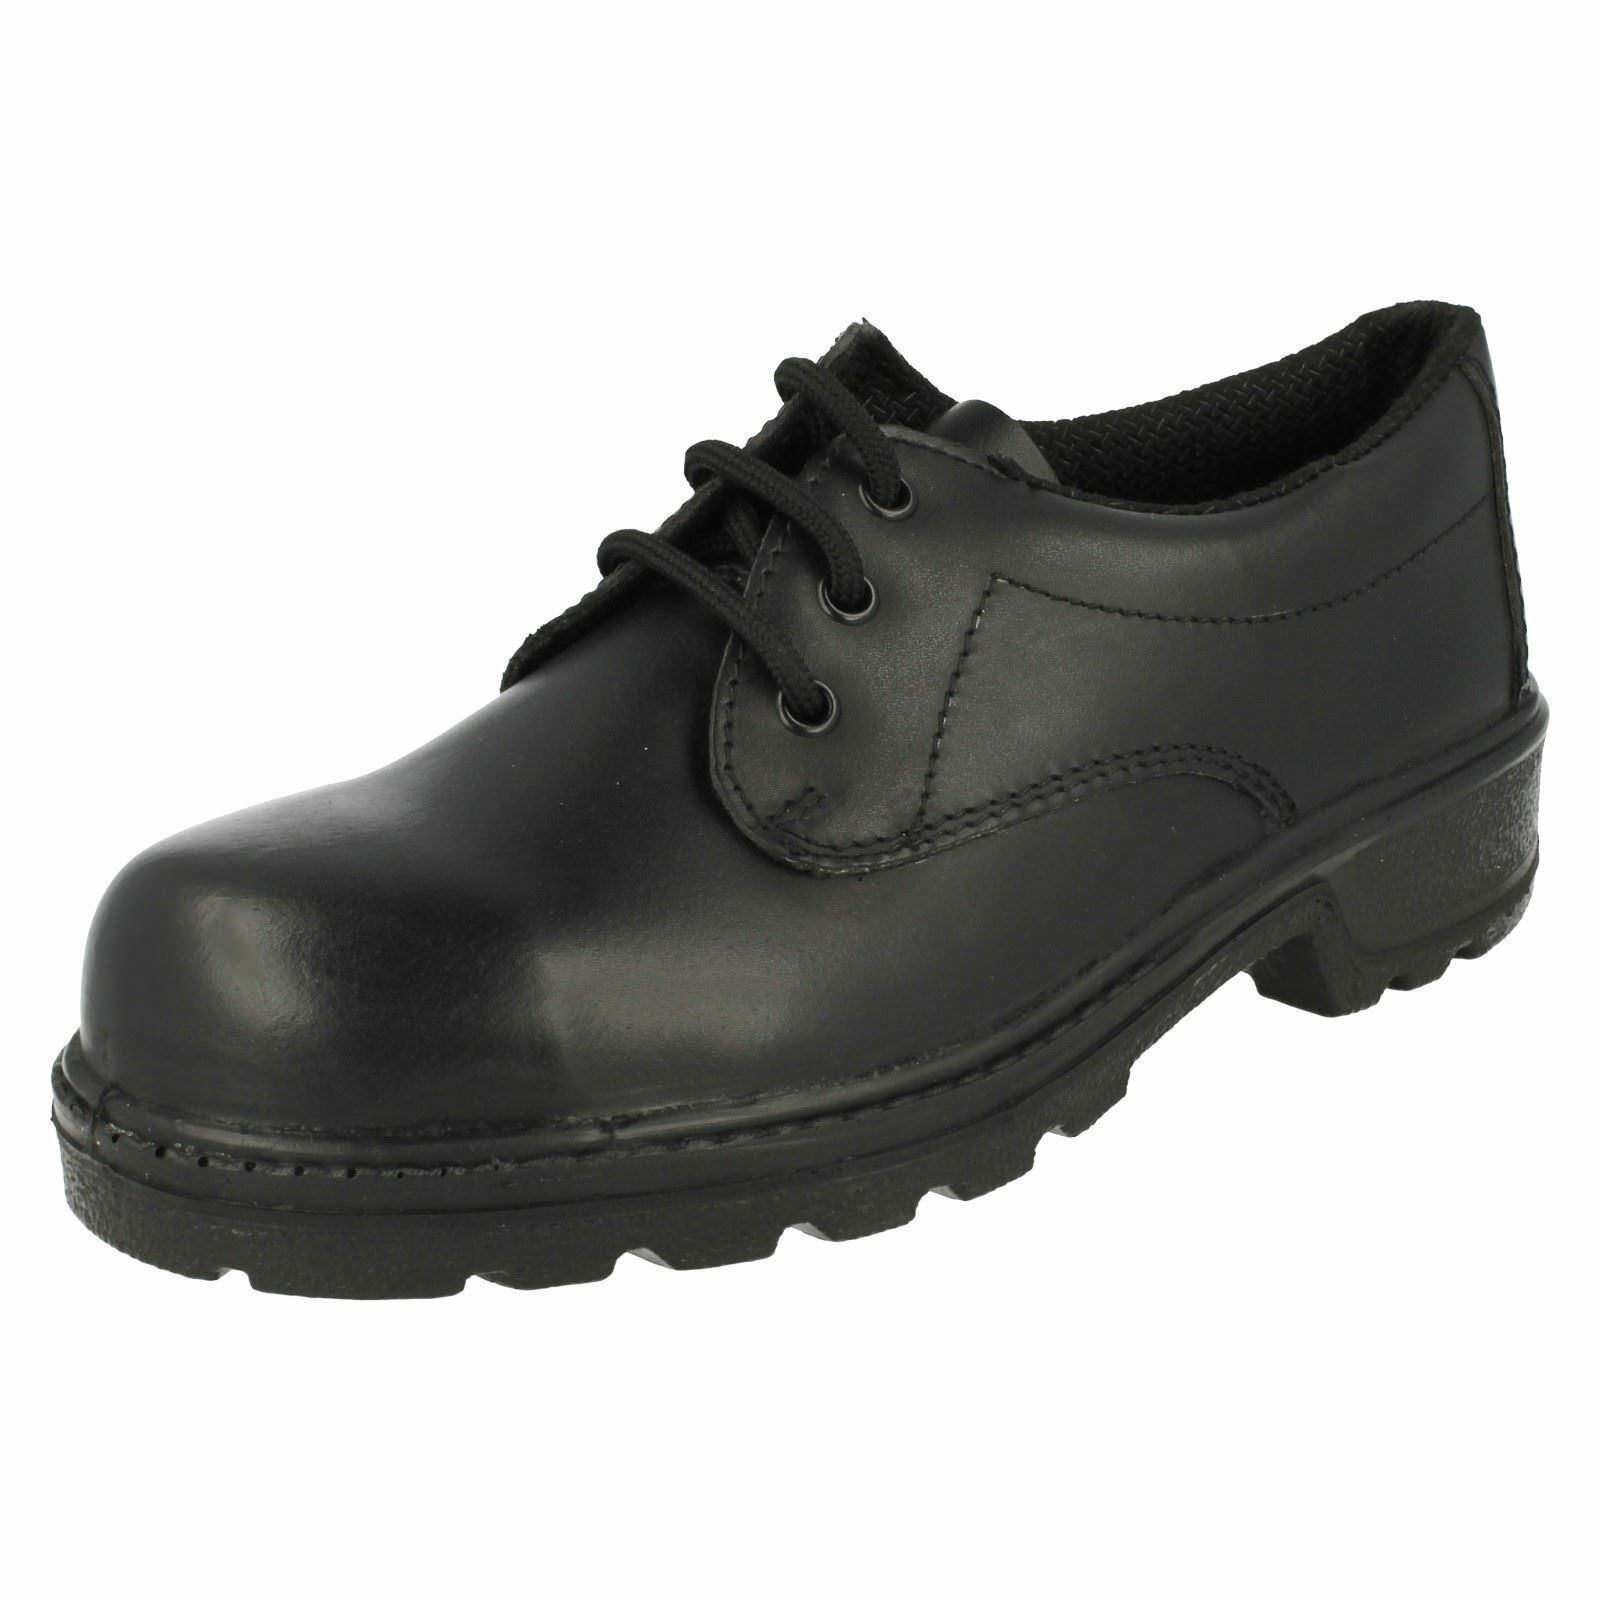 SALE Ladies steel toe black work shoes brand totectors style 3038